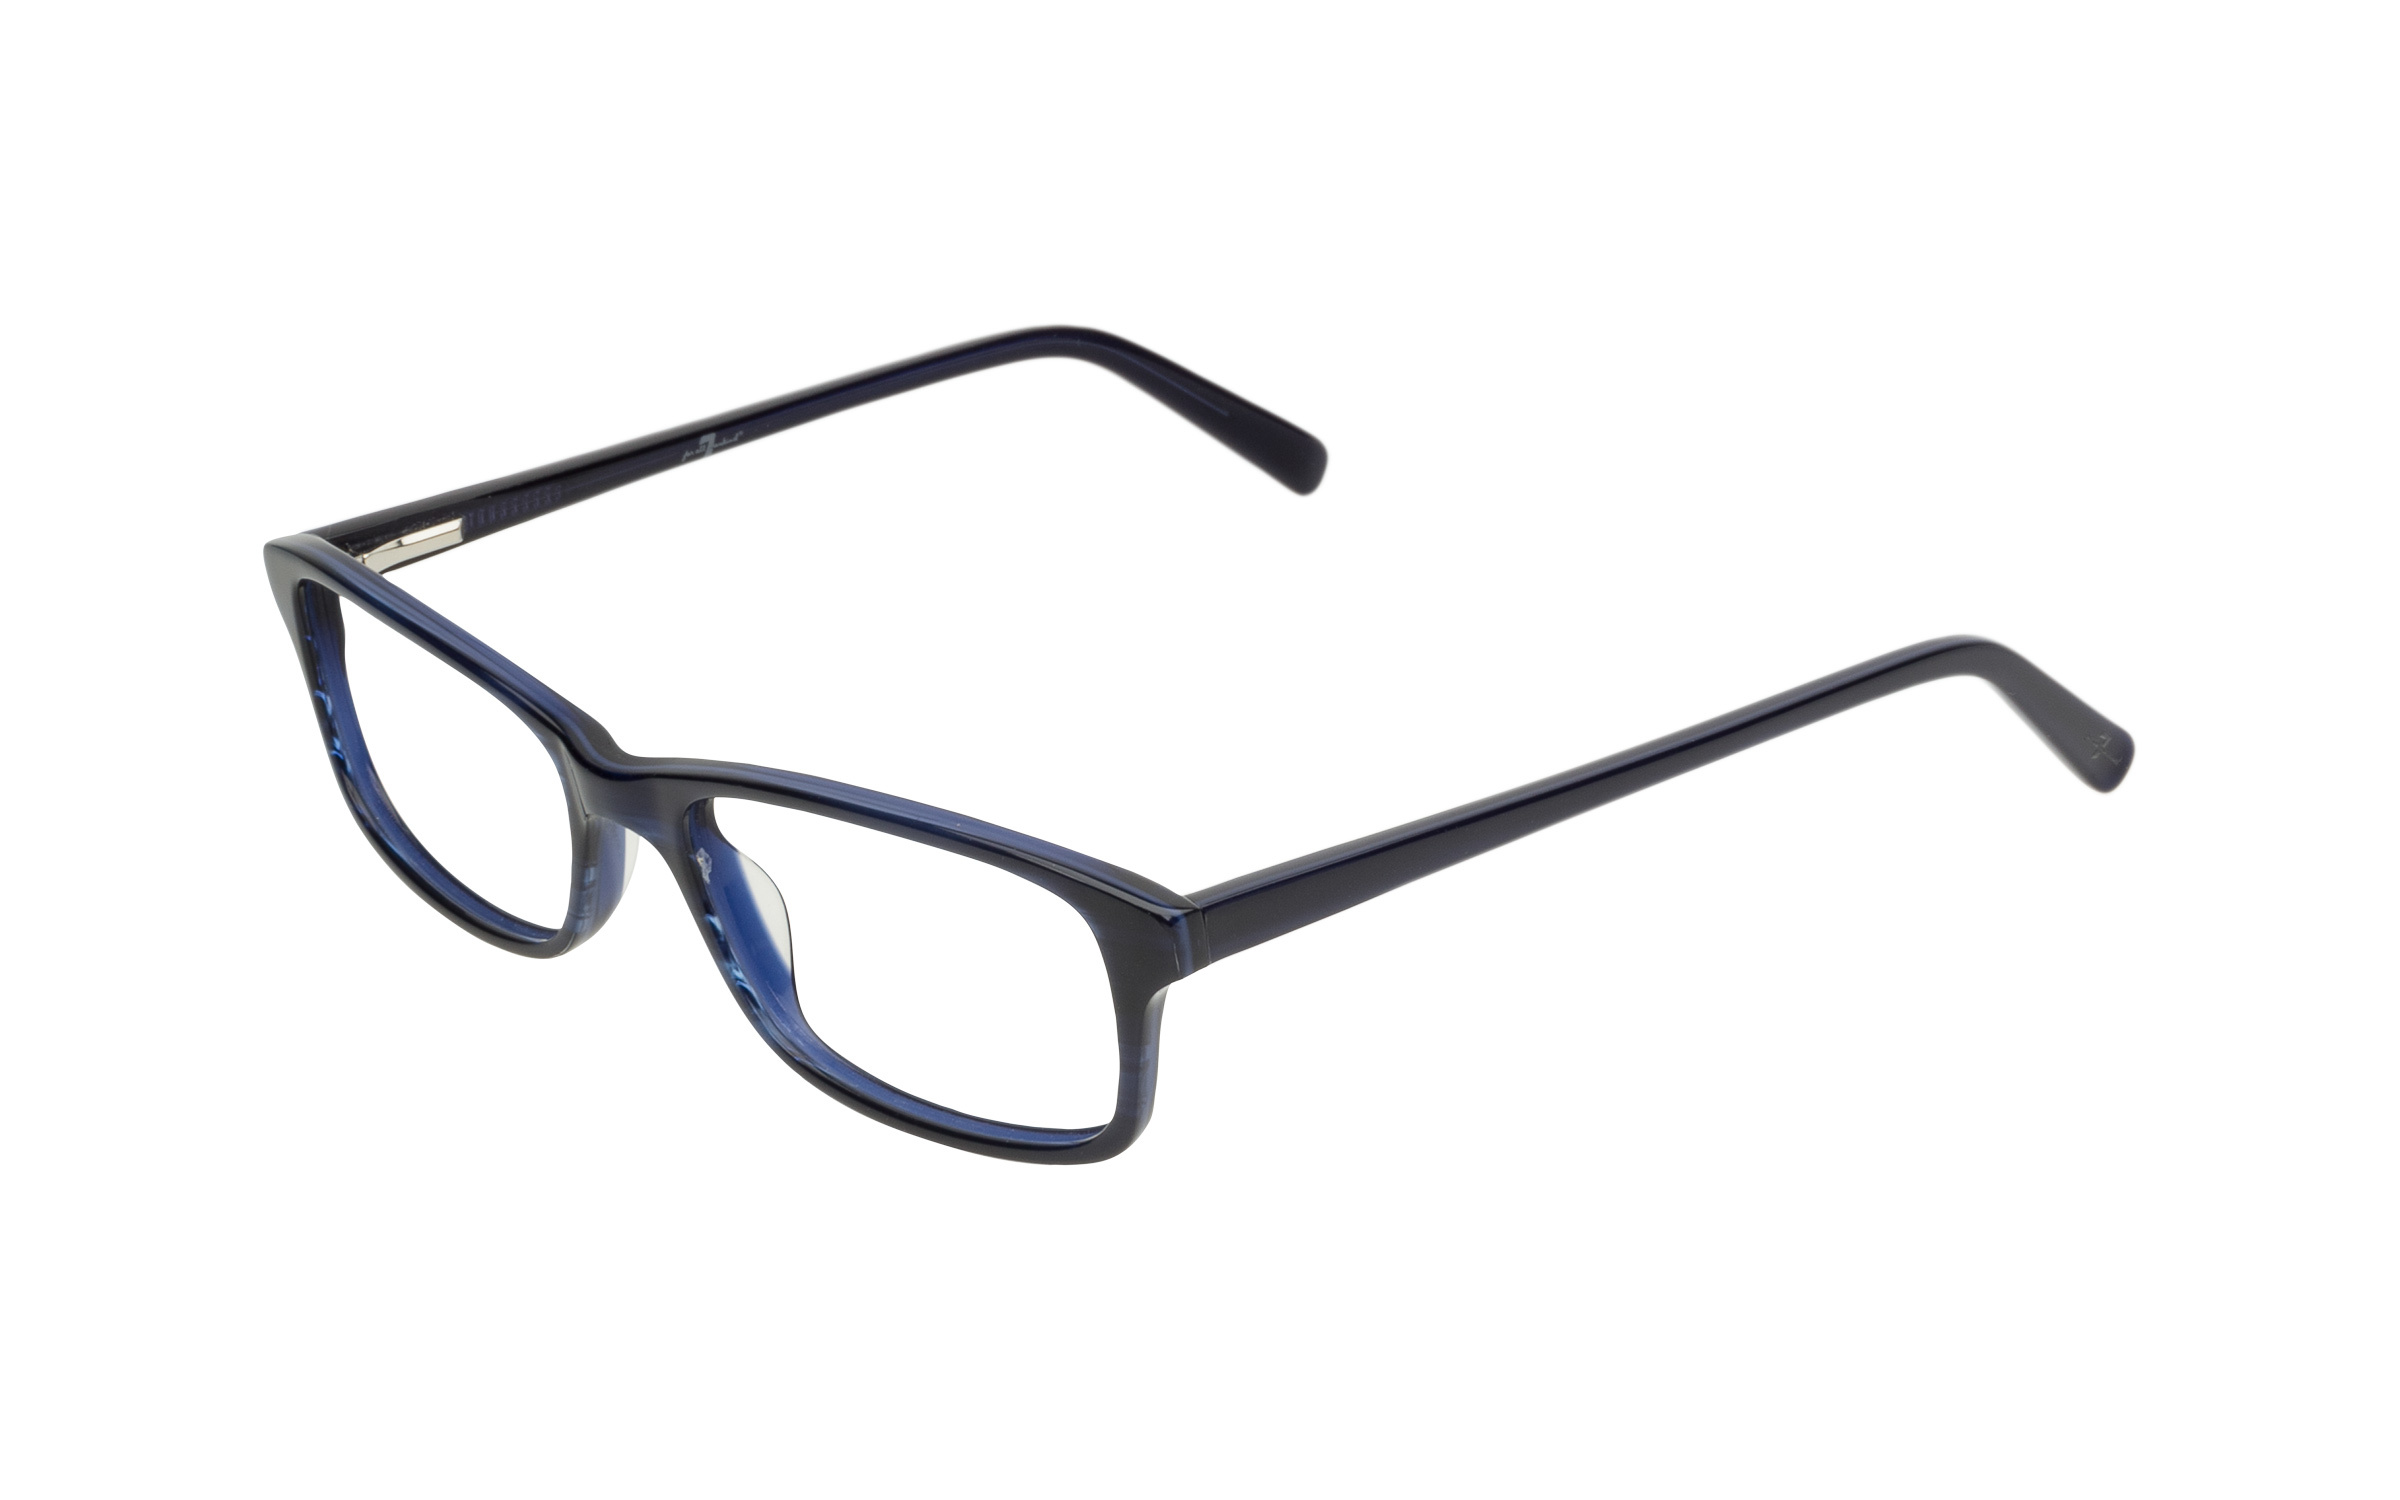 7 for All Mankind Glasses Rectangular Blue Acetate Online Clearly